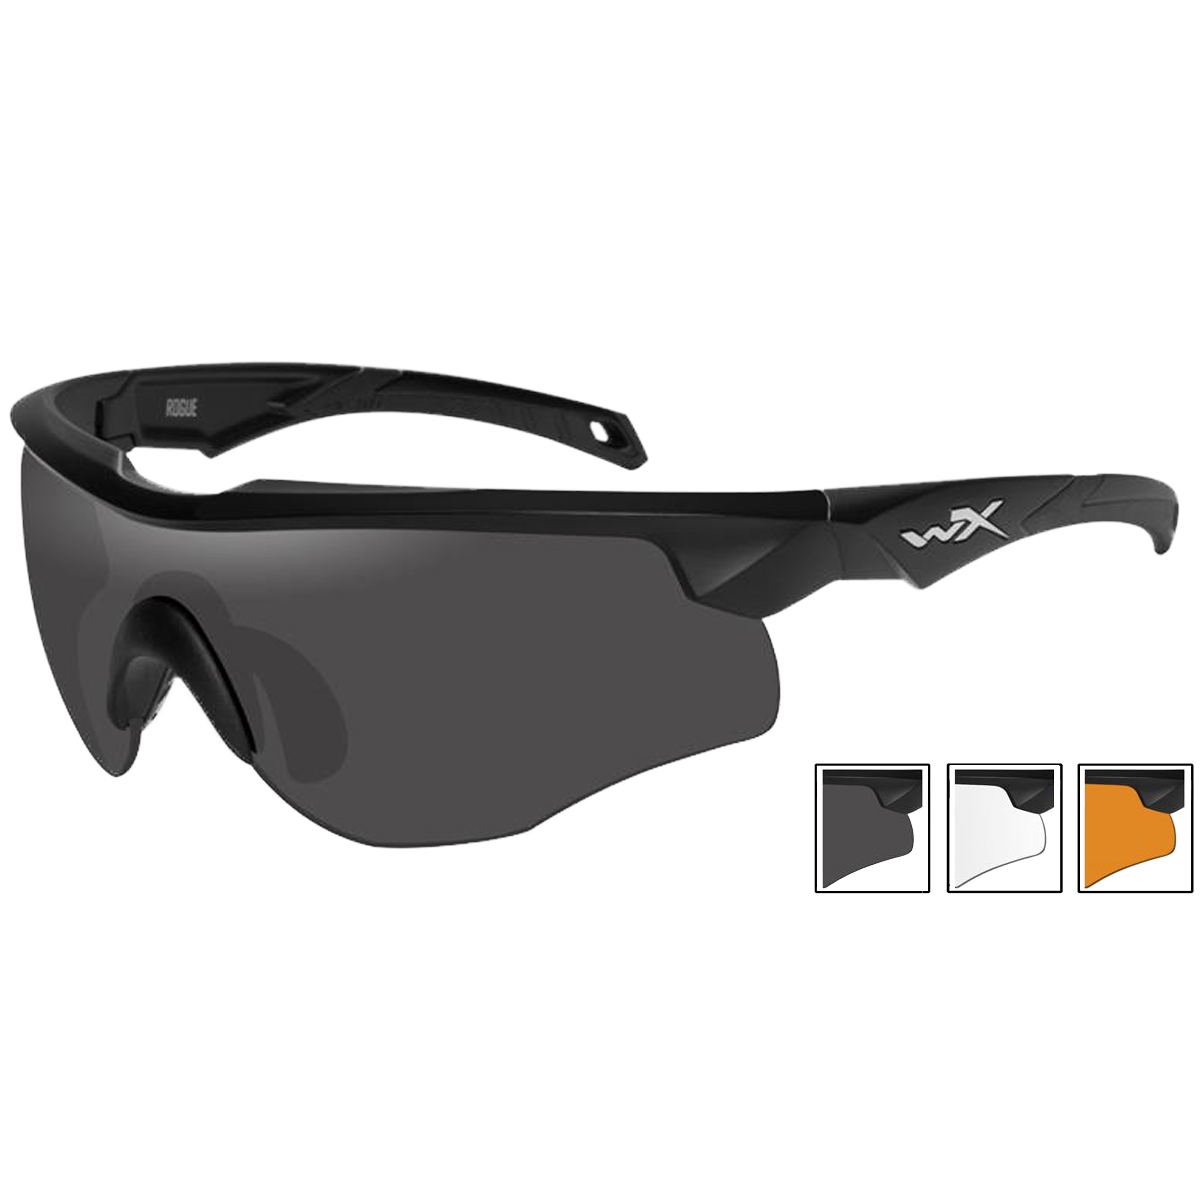 aa57e5c3eb Details about Wiley X WX Rogue Glasses Smoke Grey Clear Light Rust Lenses  Matte Black Frame